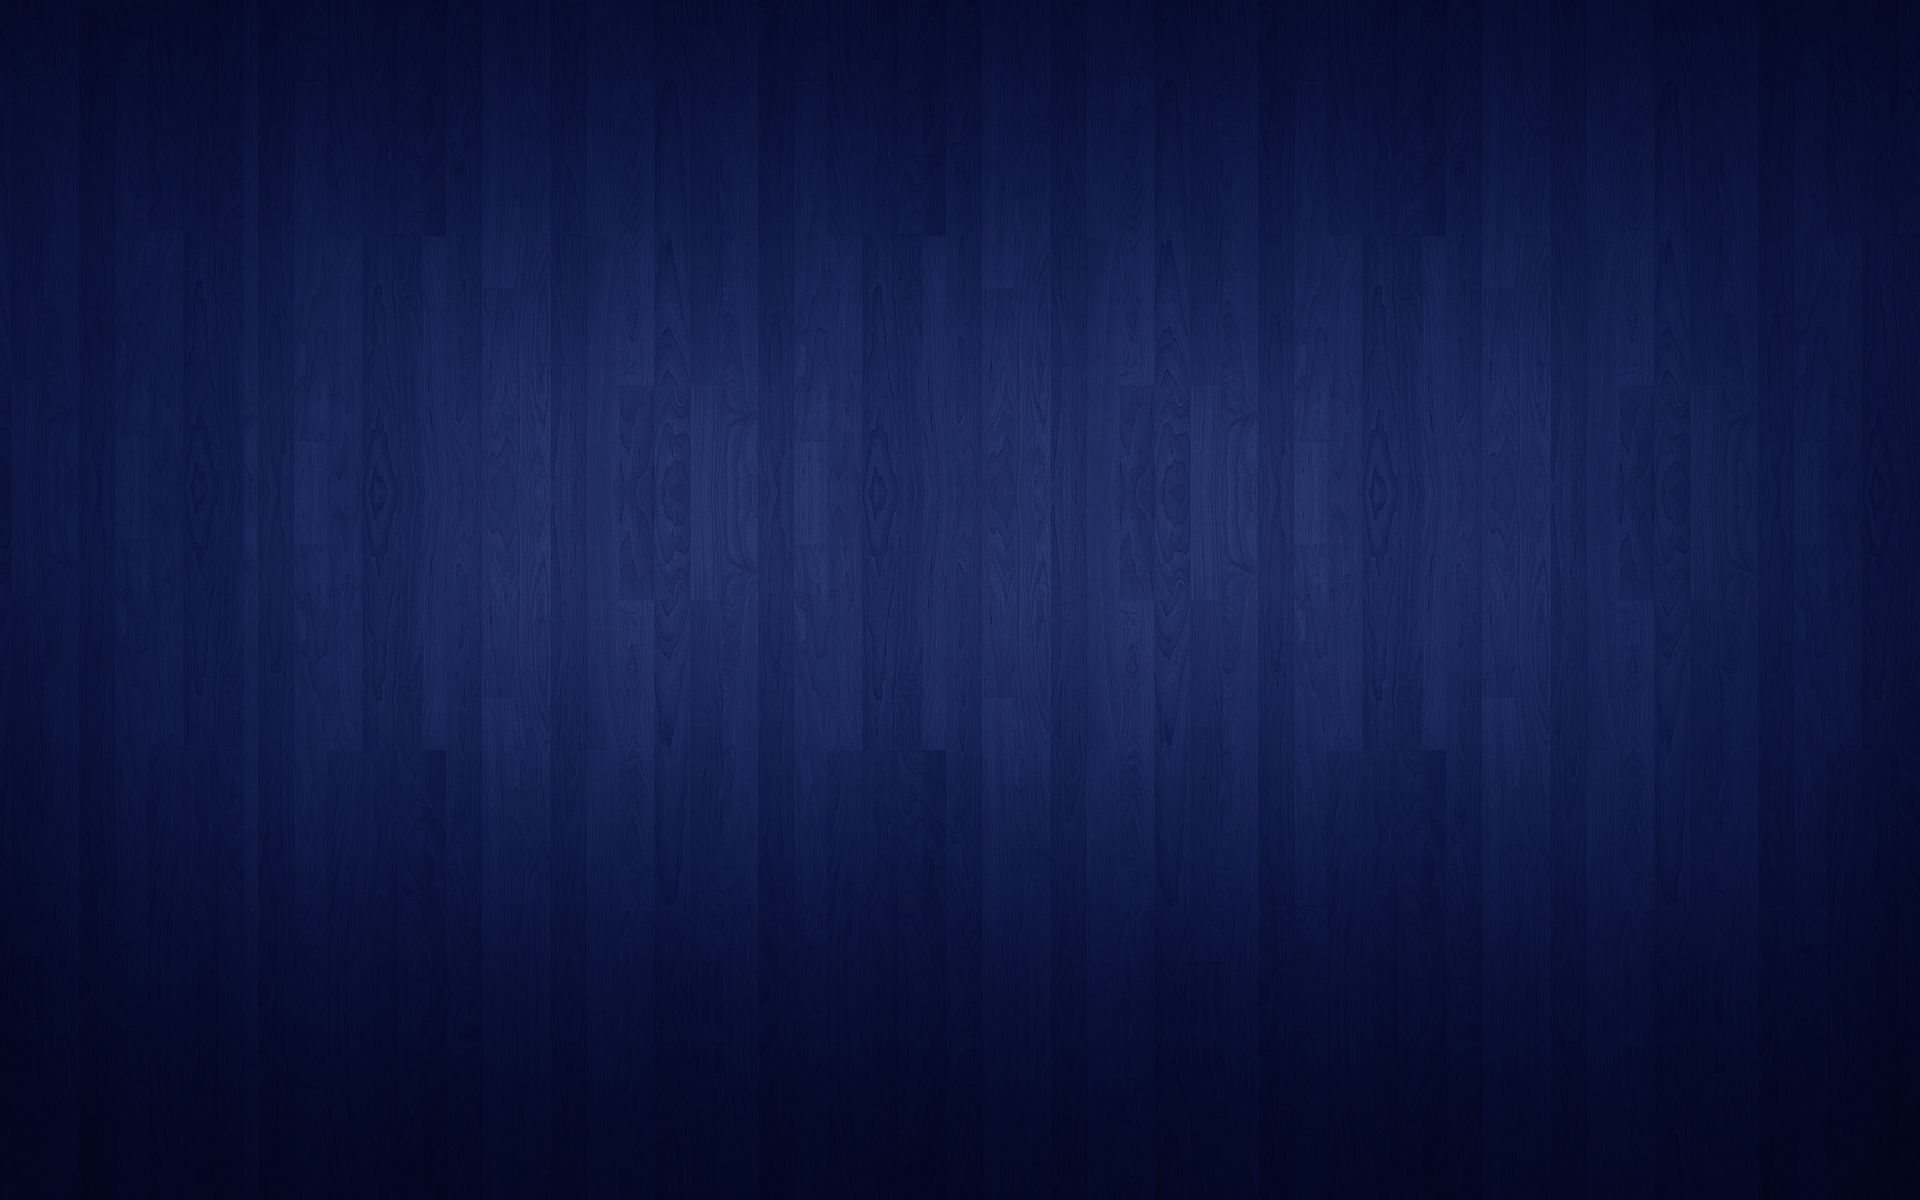 Navy Blue Best Background Images Navy Blue Navy Blue Backgrounds